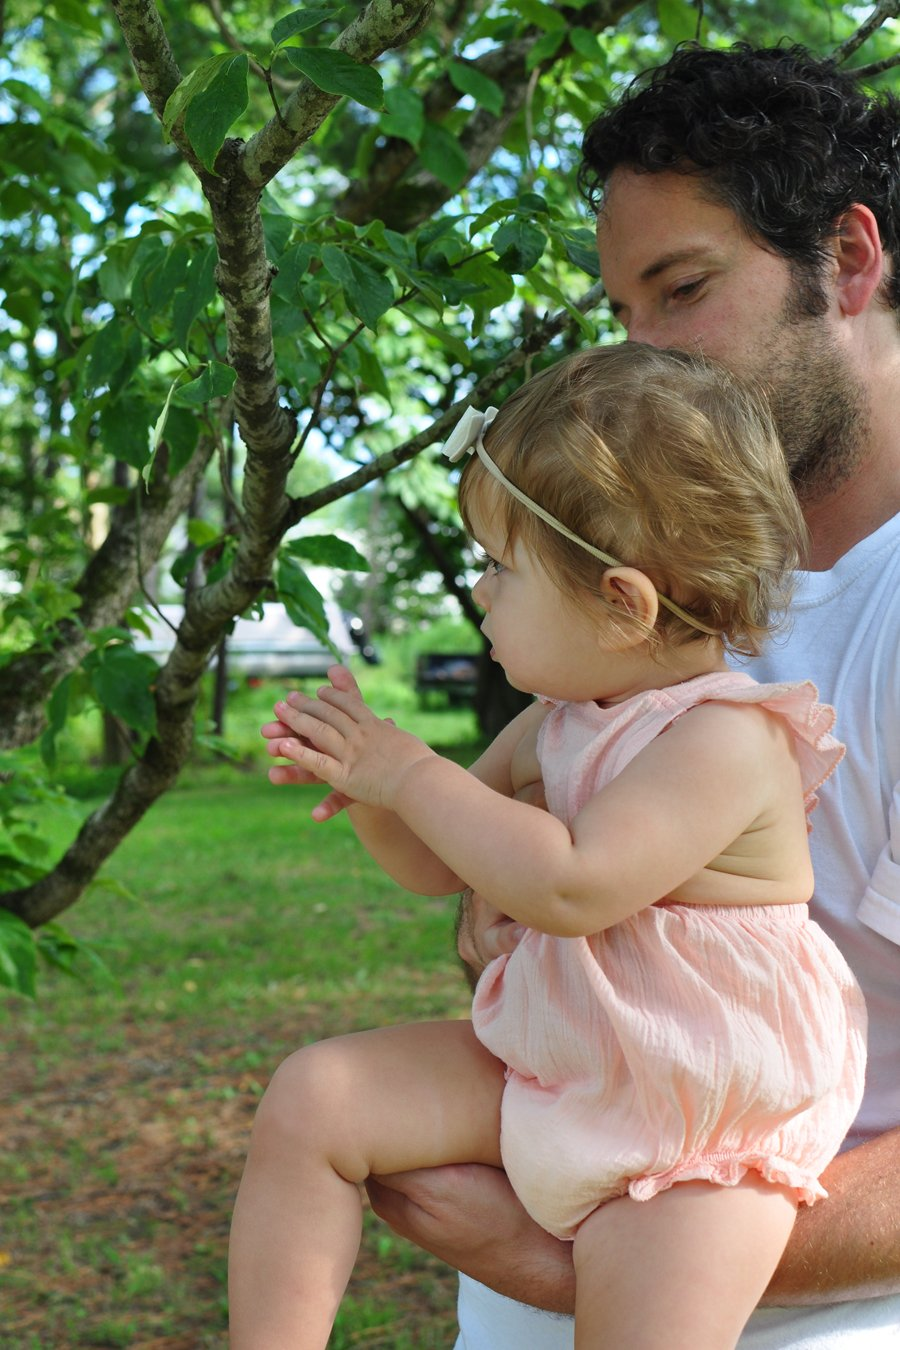 Live Life Outside: 10 Backyard Activities to Enjoy with Little Kids